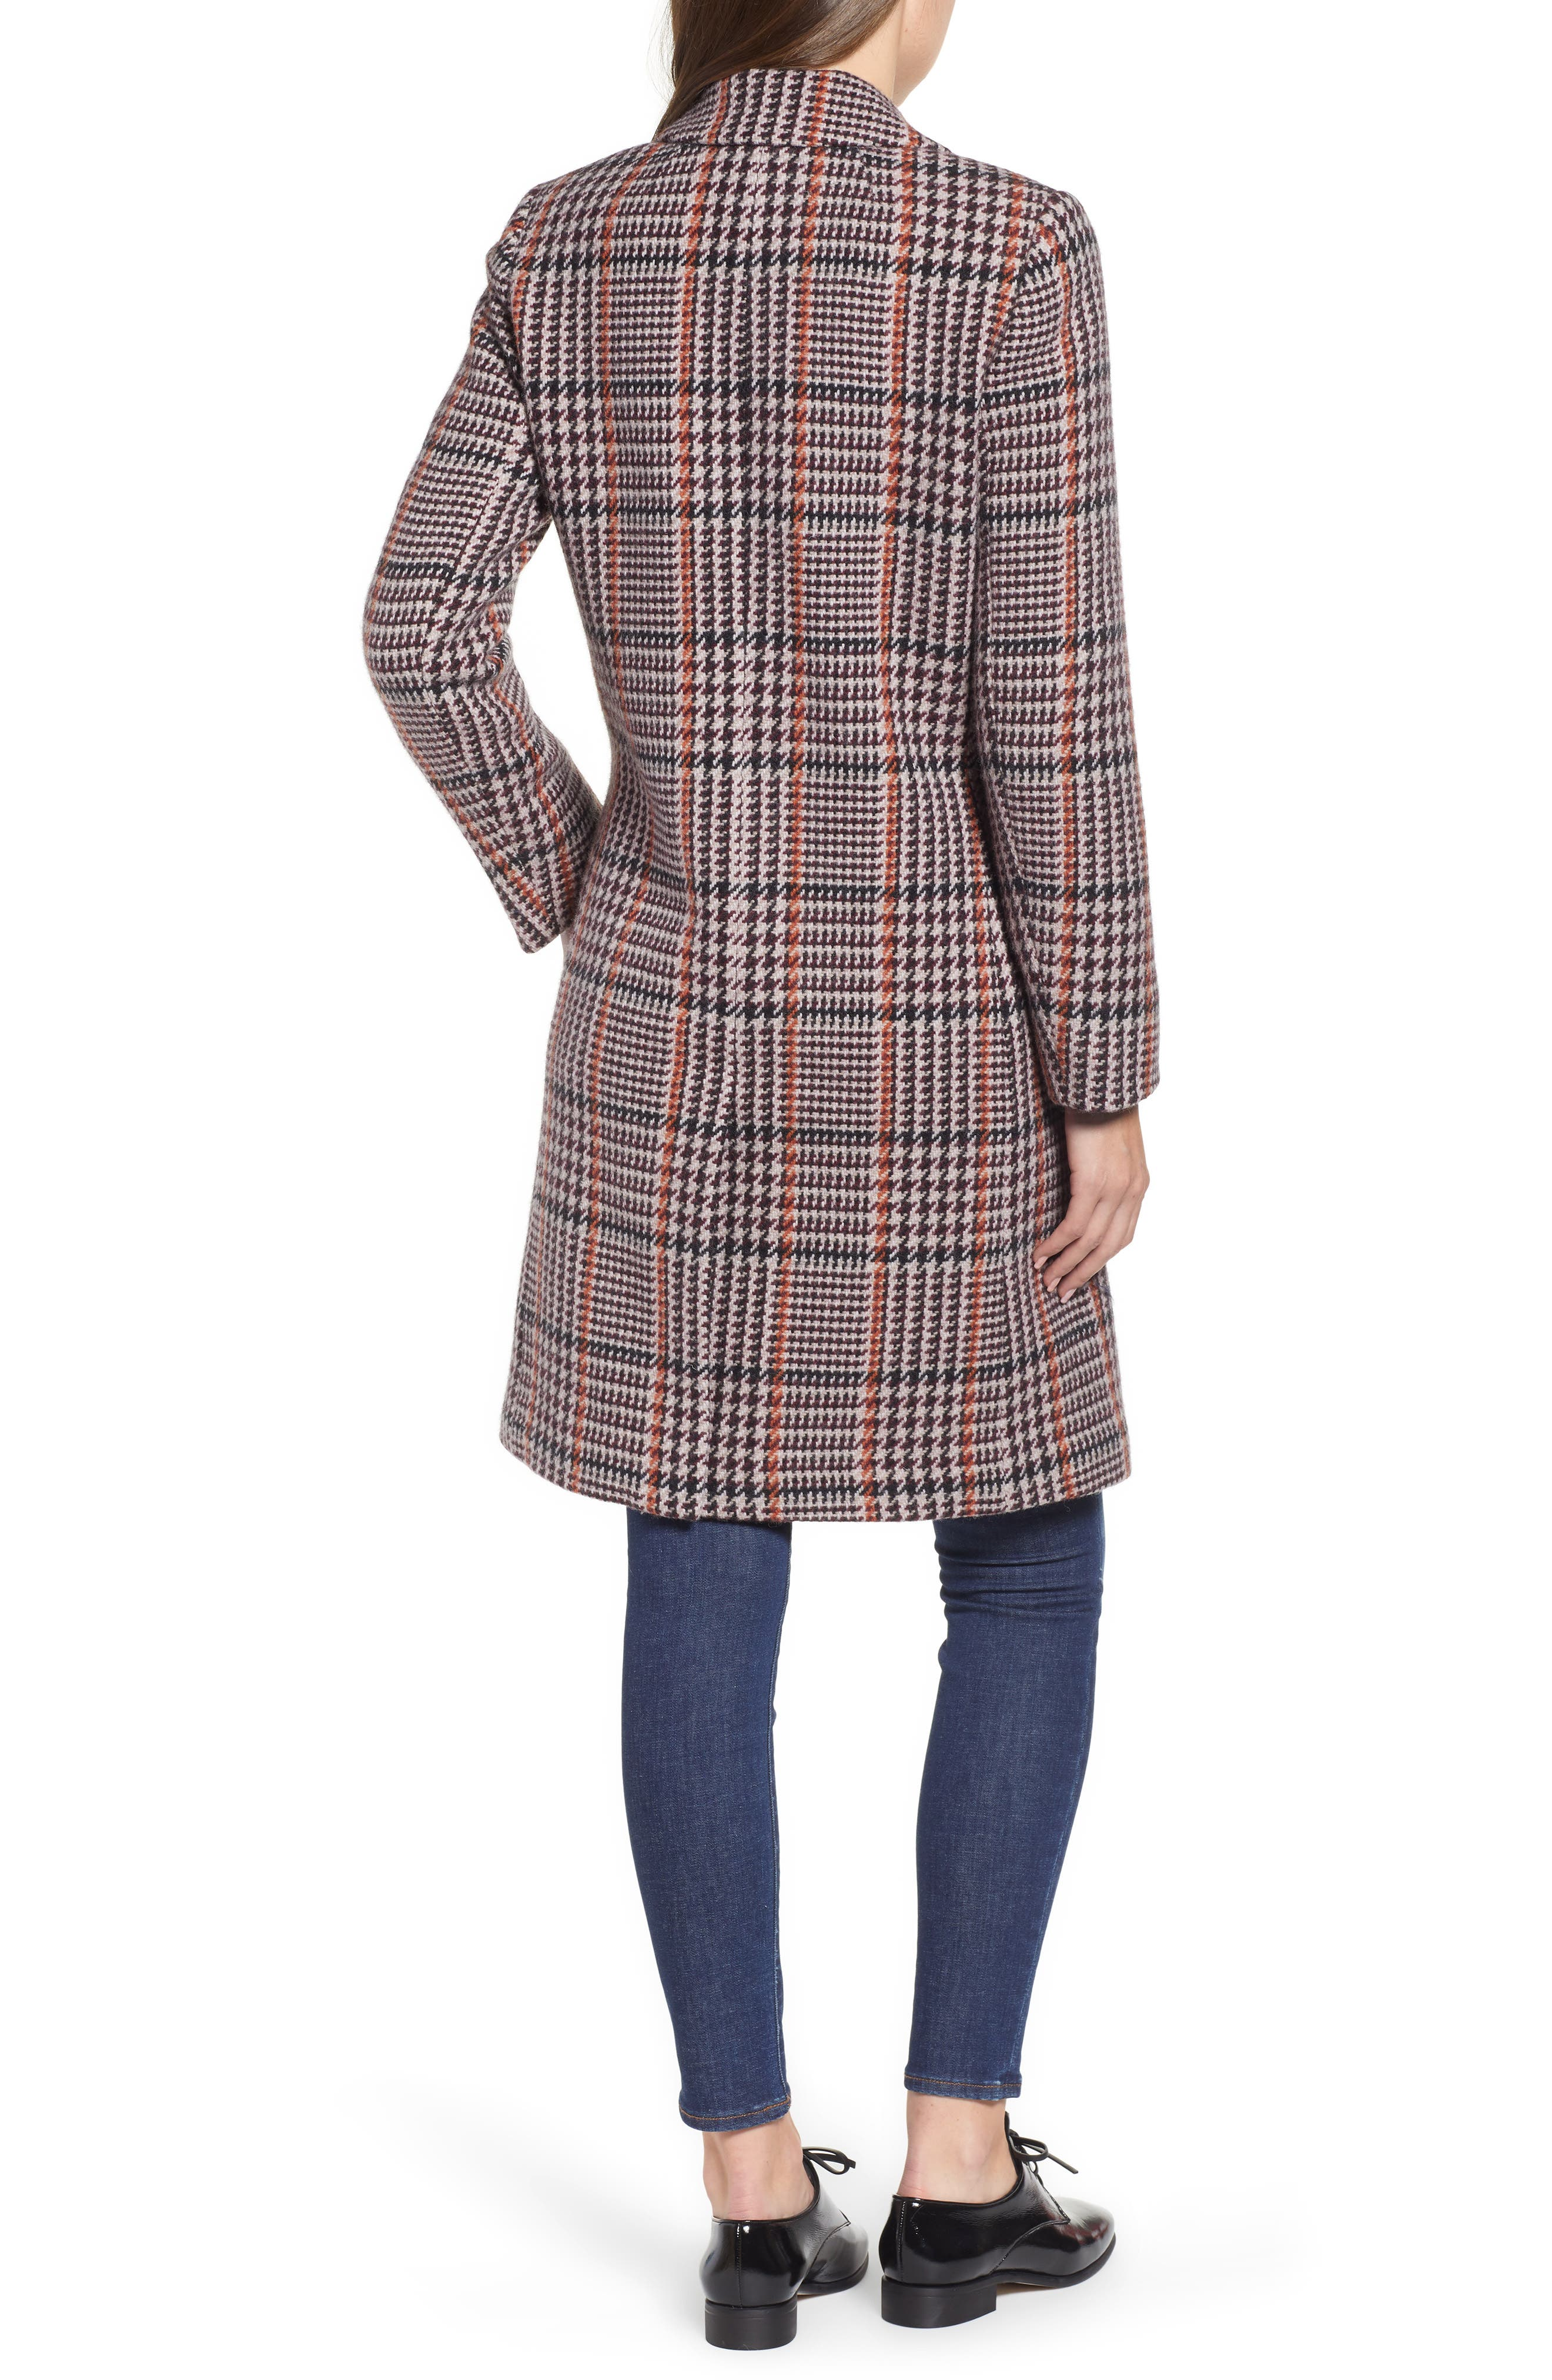 J.CREW, Plaid Single Breasted Topcoat, Alternate thumbnail 2, color, 600